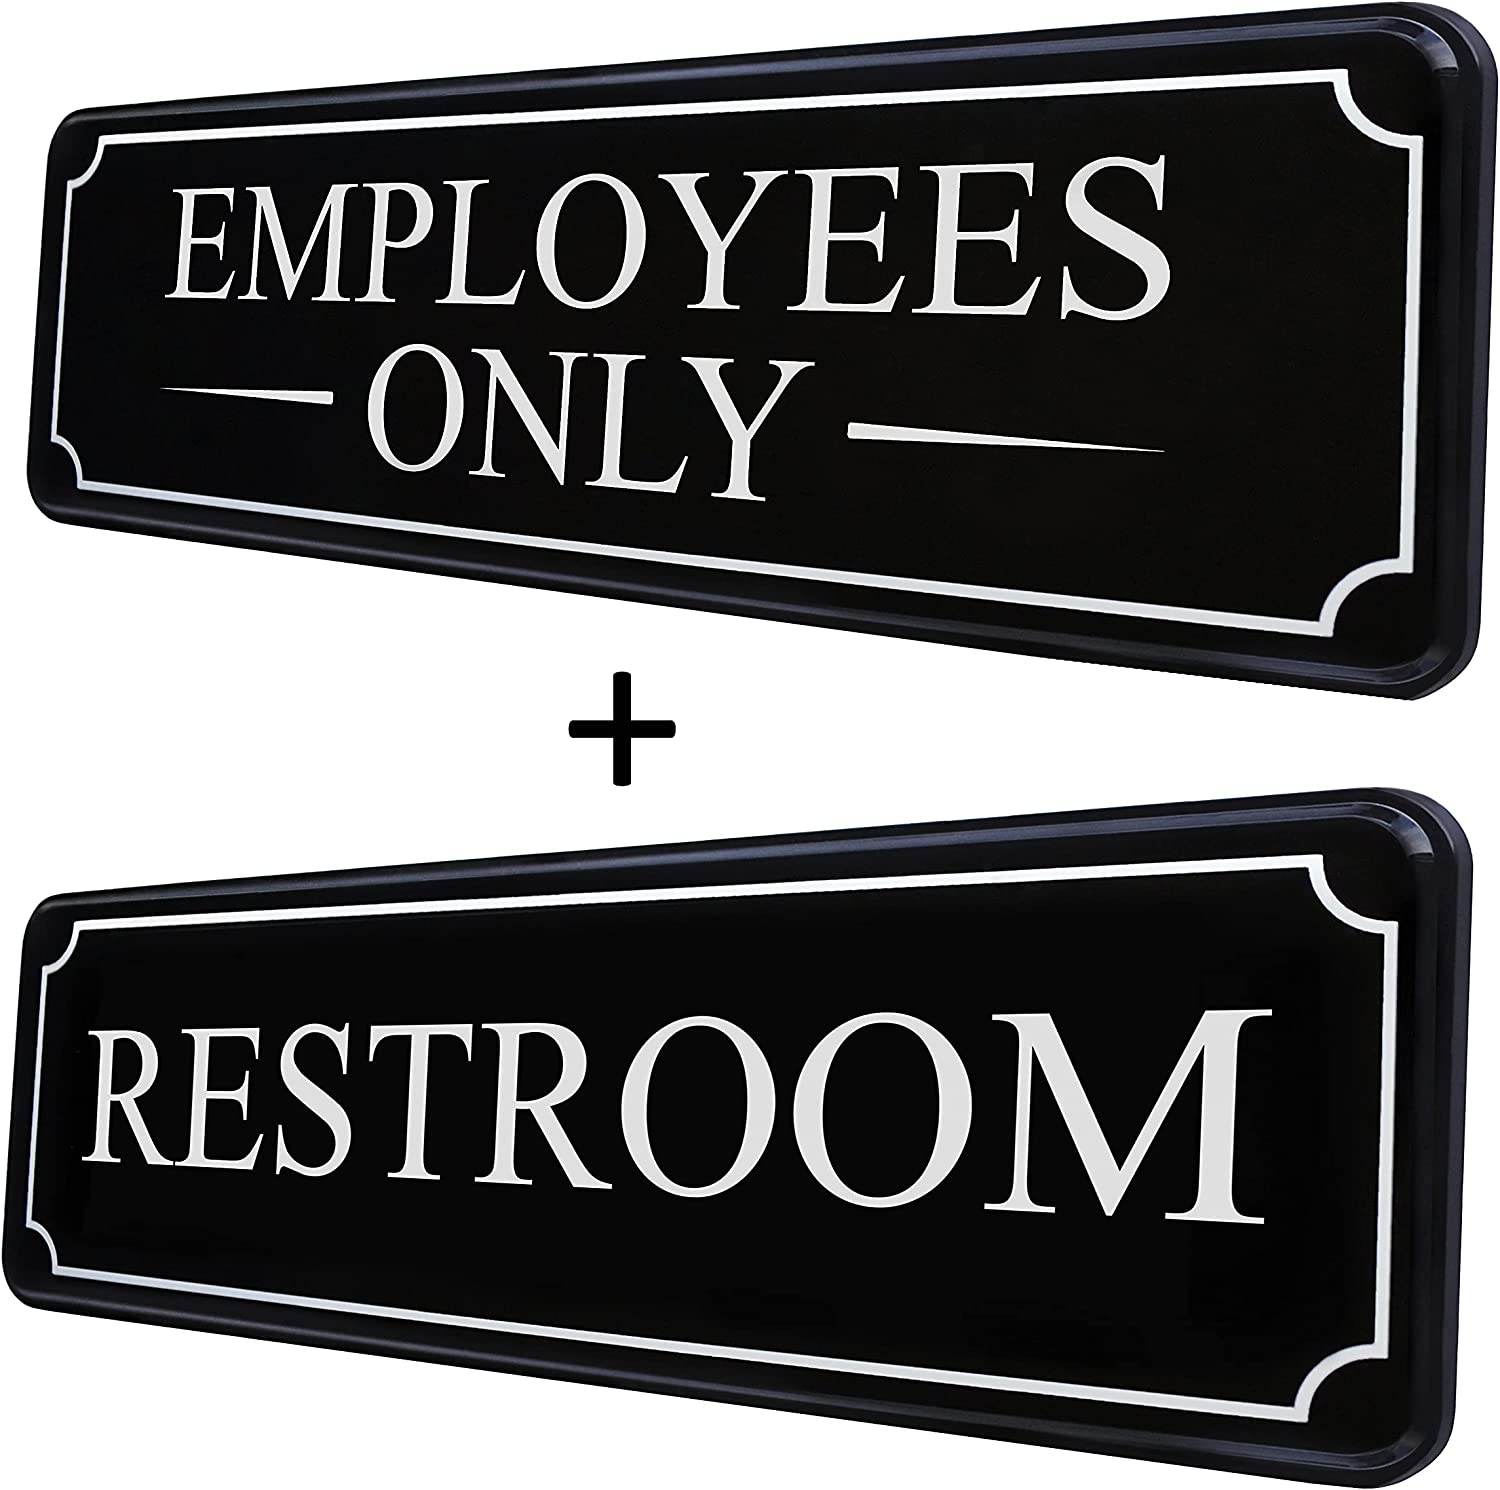 MolnijaPro - Employees Only Sign Mail order cheap 1 + piece Restroom 70% OFF Outlet